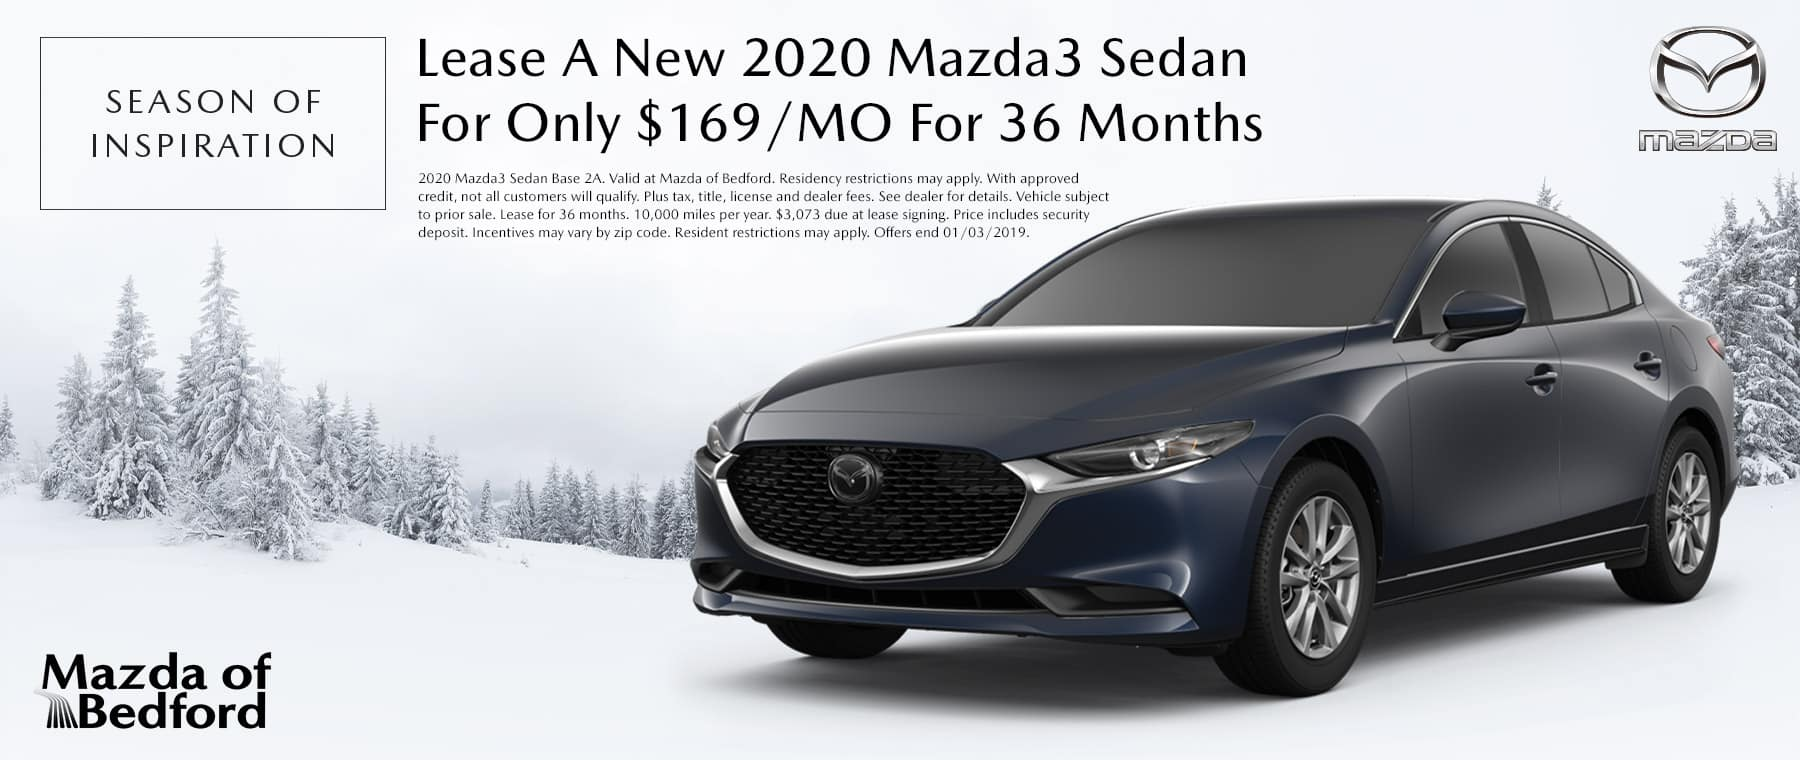 2020 Mazda3 Sedan - Mazda of Bedford - Bedford, OH